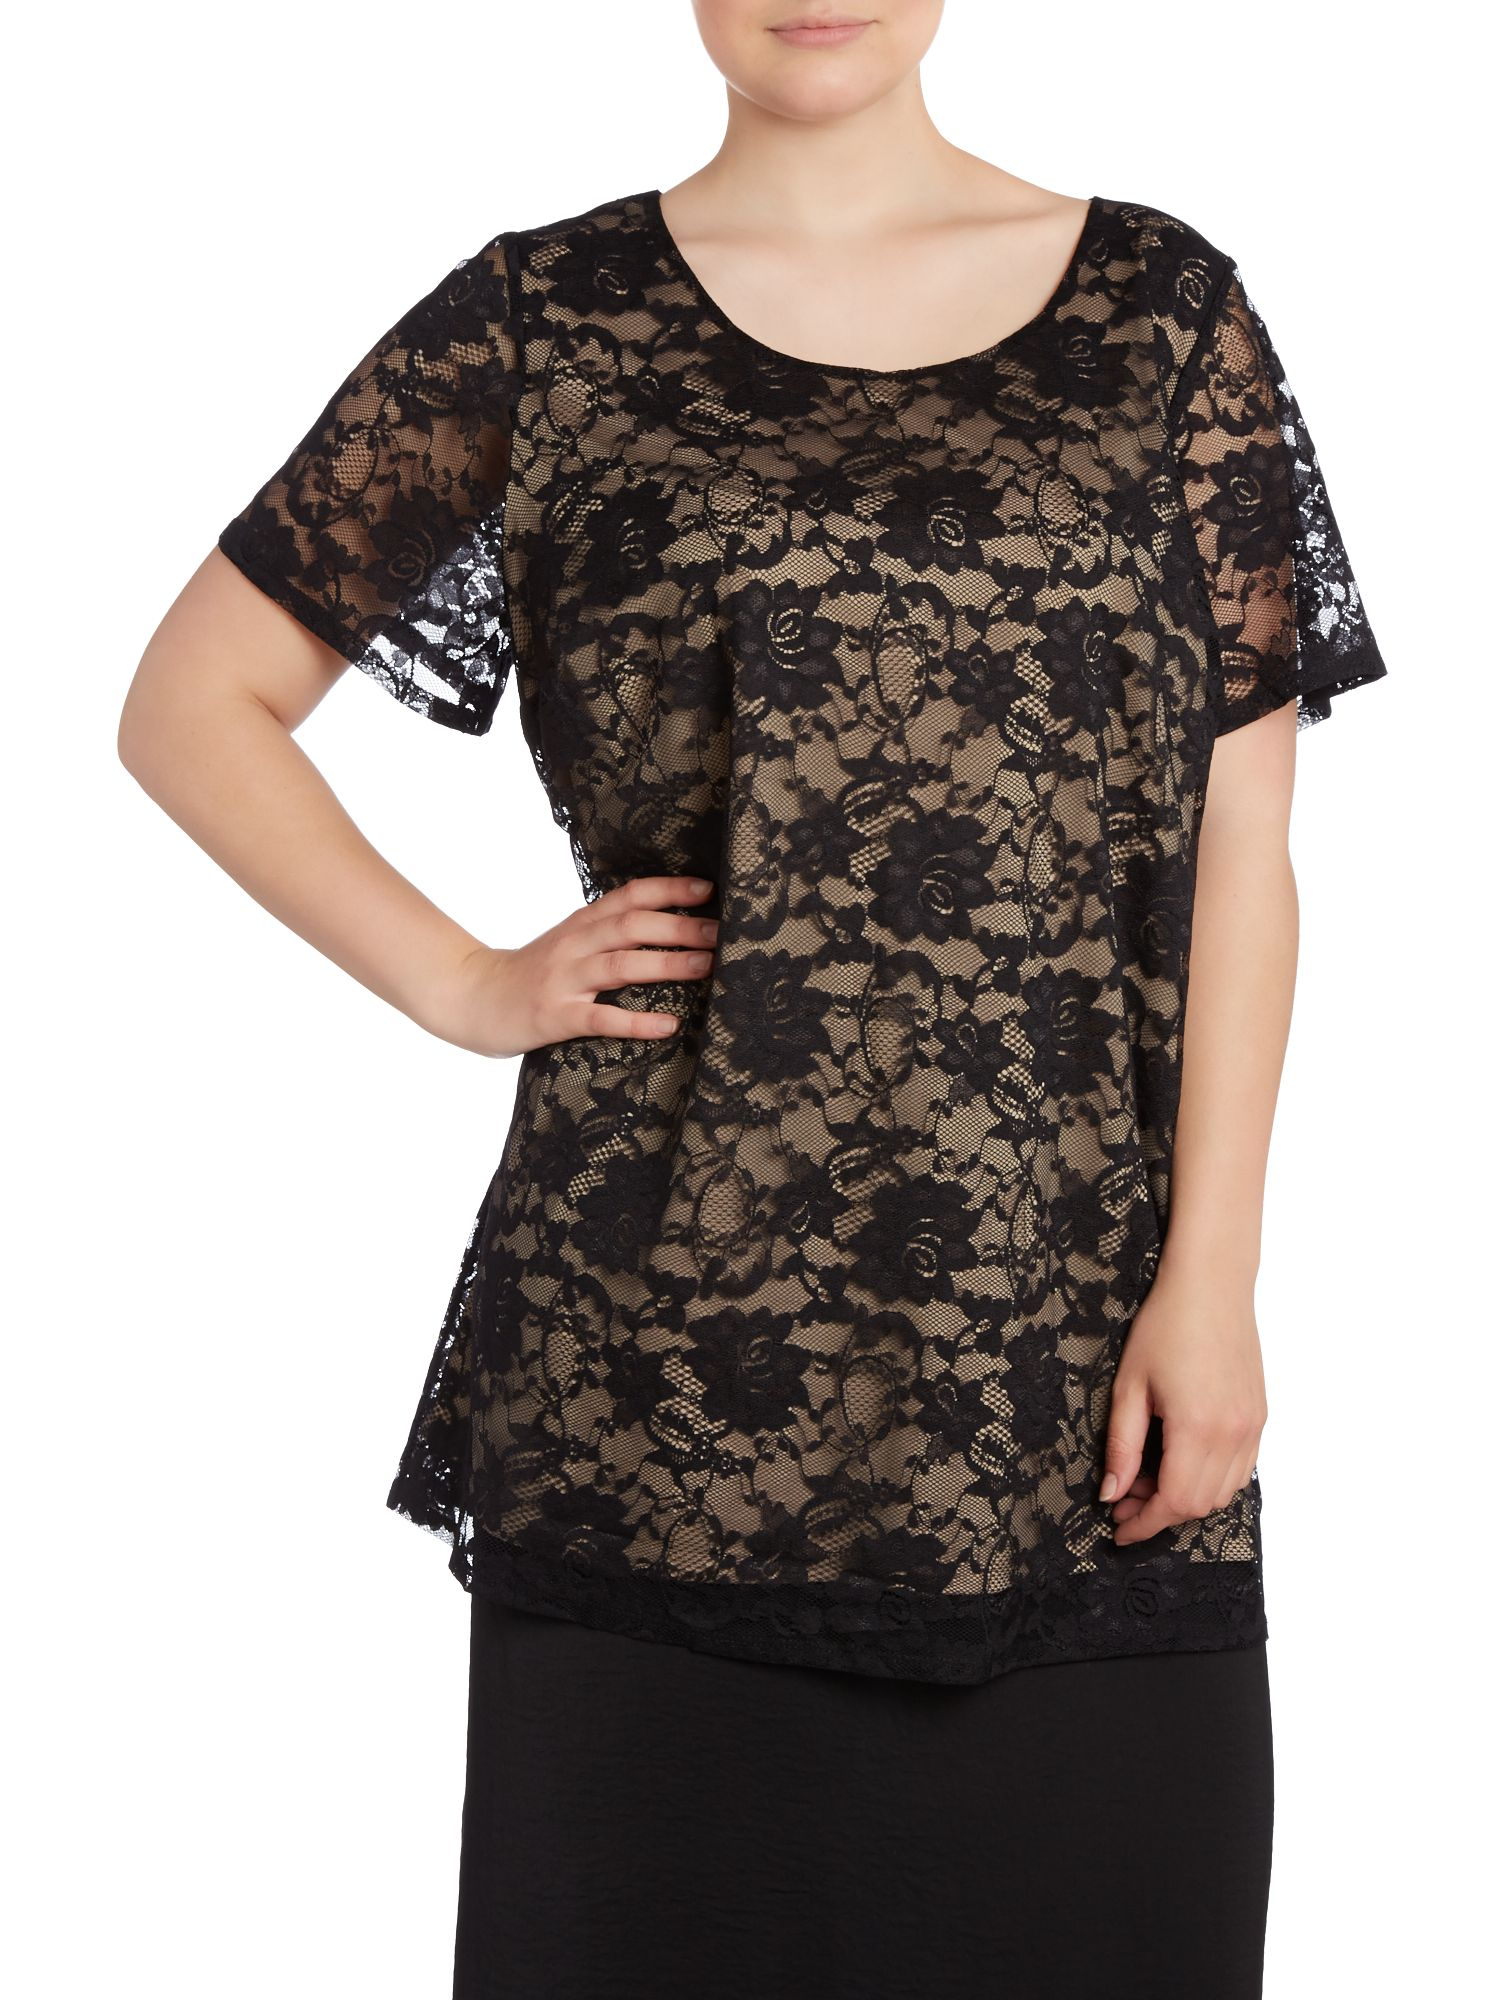 Stone lace shell top